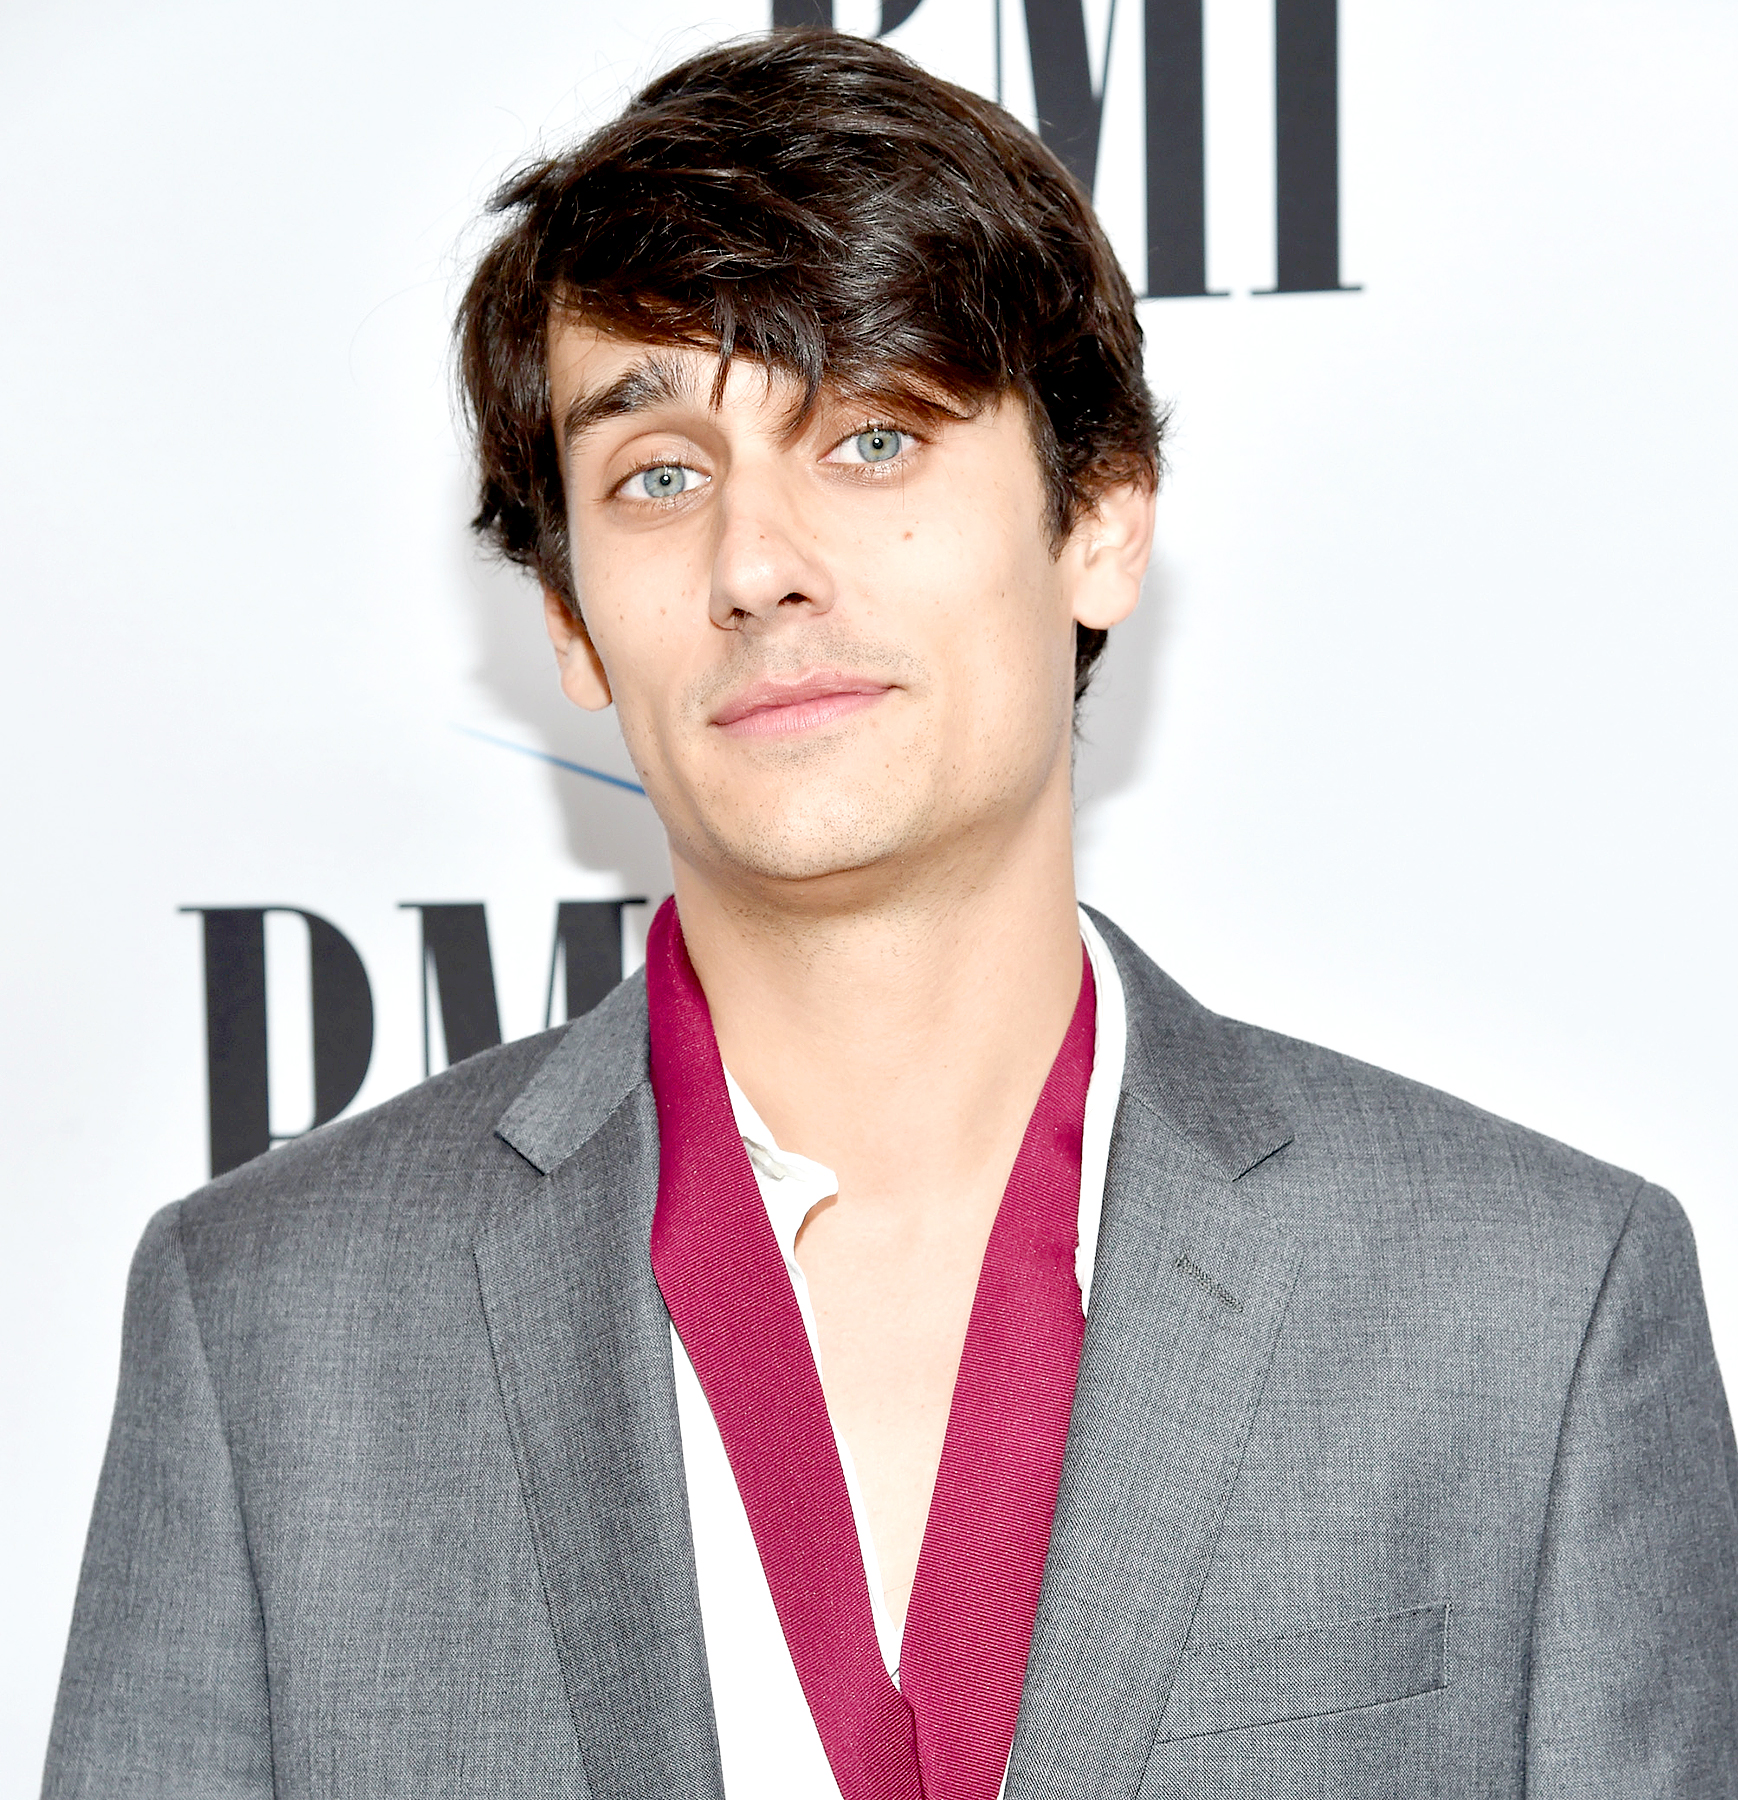 Songwriter Teddy Geiger: 'I am transitioning'